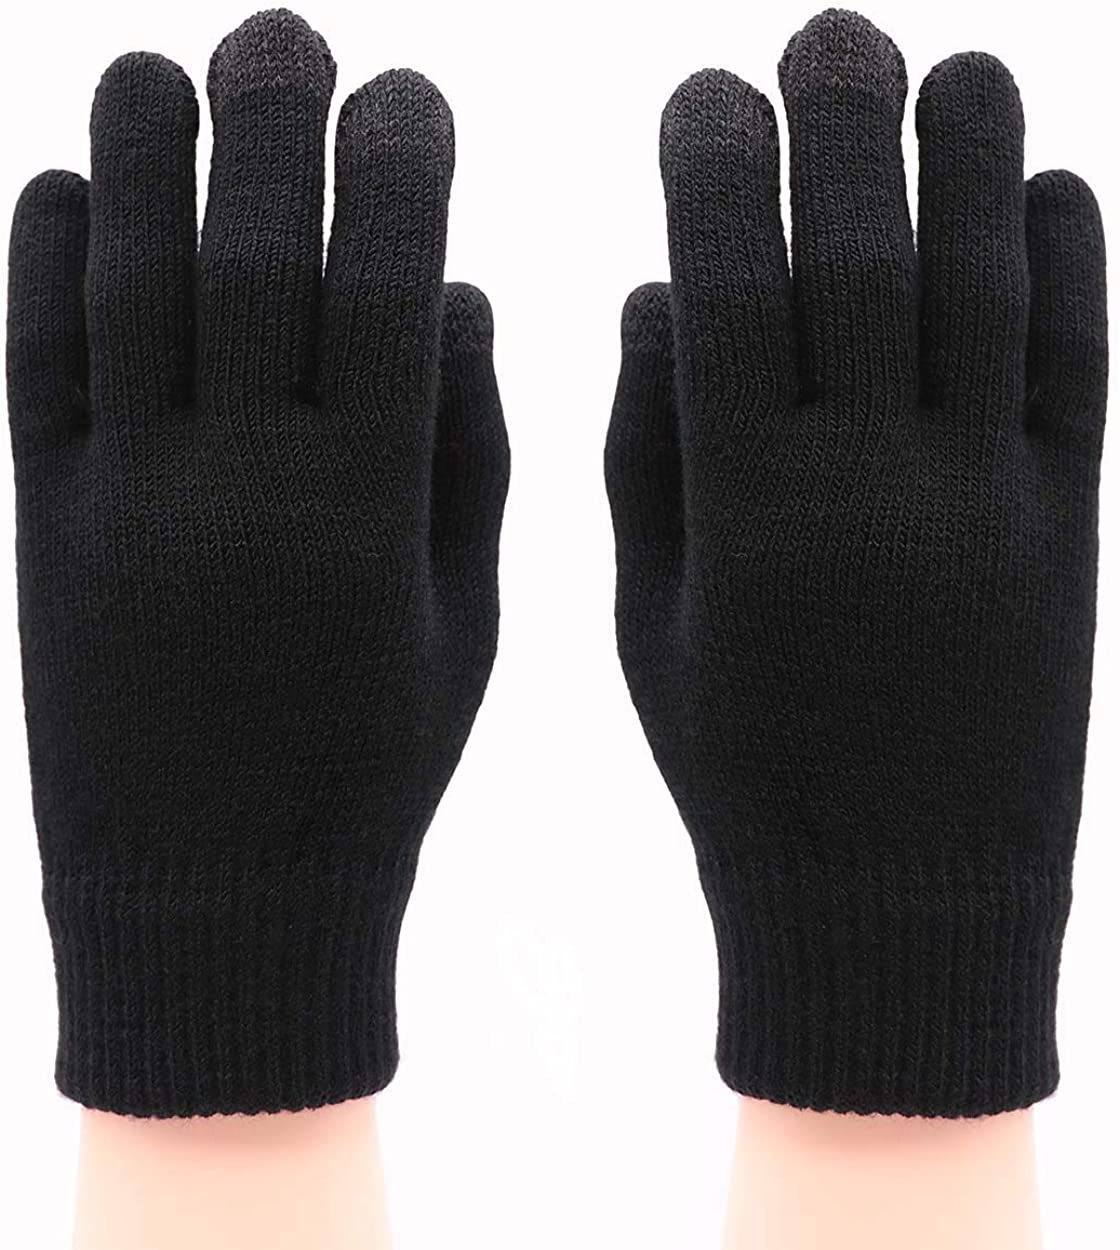 Men Winter Touchscreen Knit GlovesWarm Soft Texting Mittens for Smartphone Iphone Ipad with Warm Wool Lining